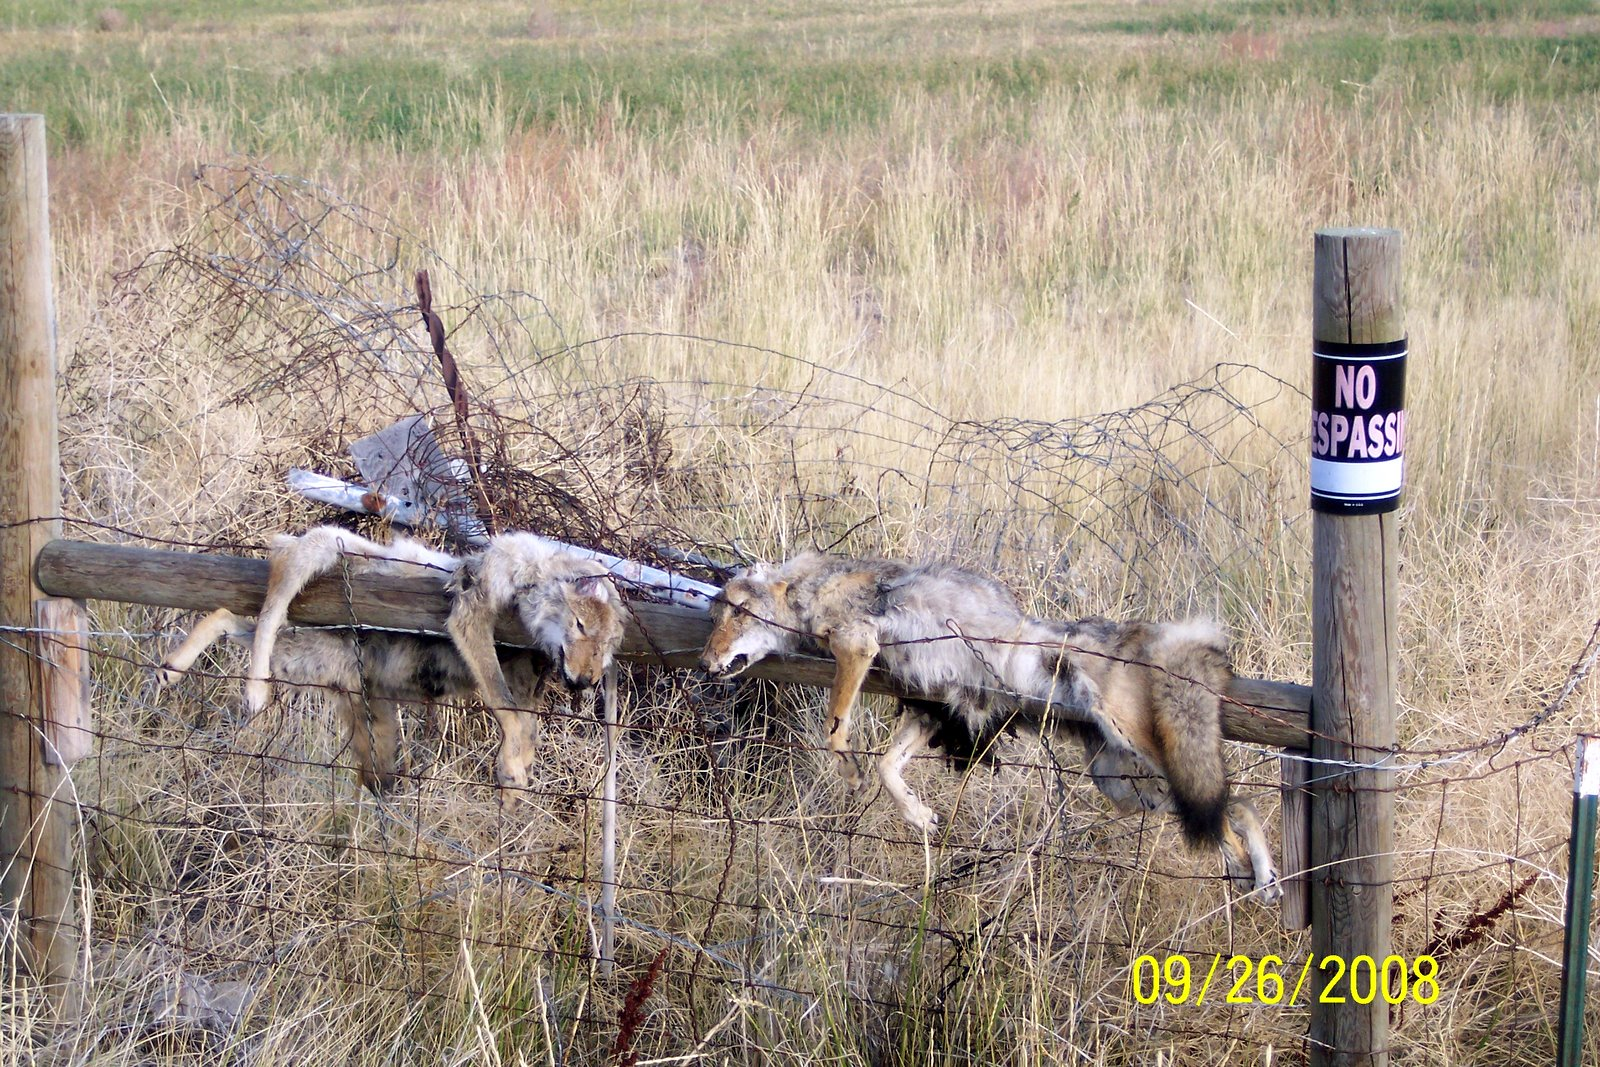 UNKNOWN HUNTER PLACED THESE COYOTES ON S/E CORNER POST. PEEVED CYCLIST TOOK PICTURE WHICH APPEARED IN HERALD JOURNAL.